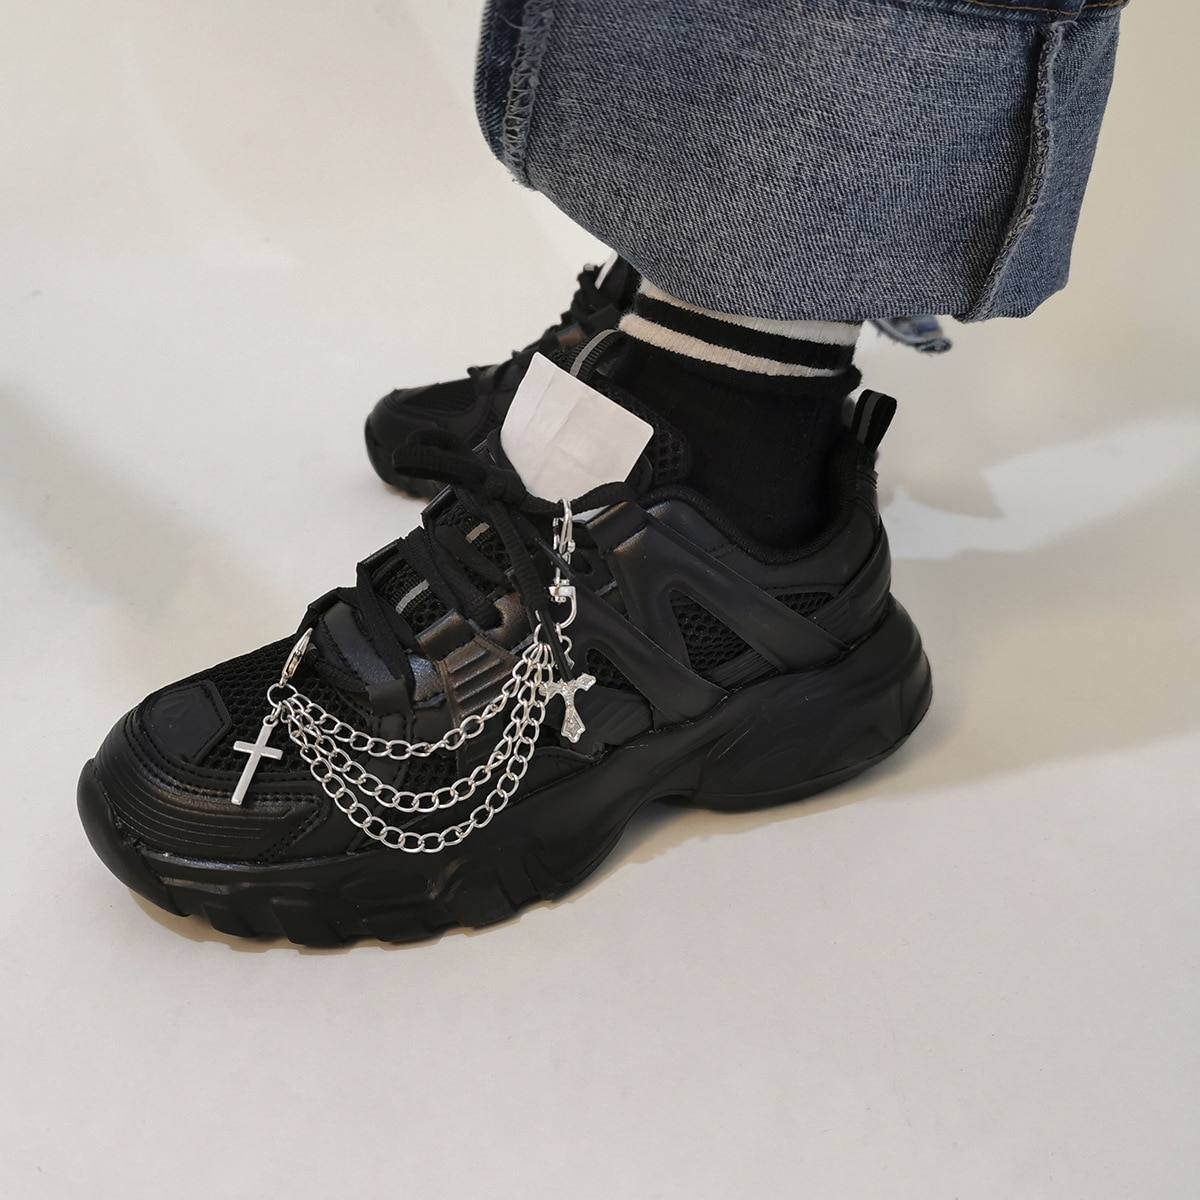 Hiphop Cross Tassel Pendant Boot Shoe Chain Jewelry 2021 New Jewelry Anklet Chains for Woman Man Unisex Party Jewelry Gift